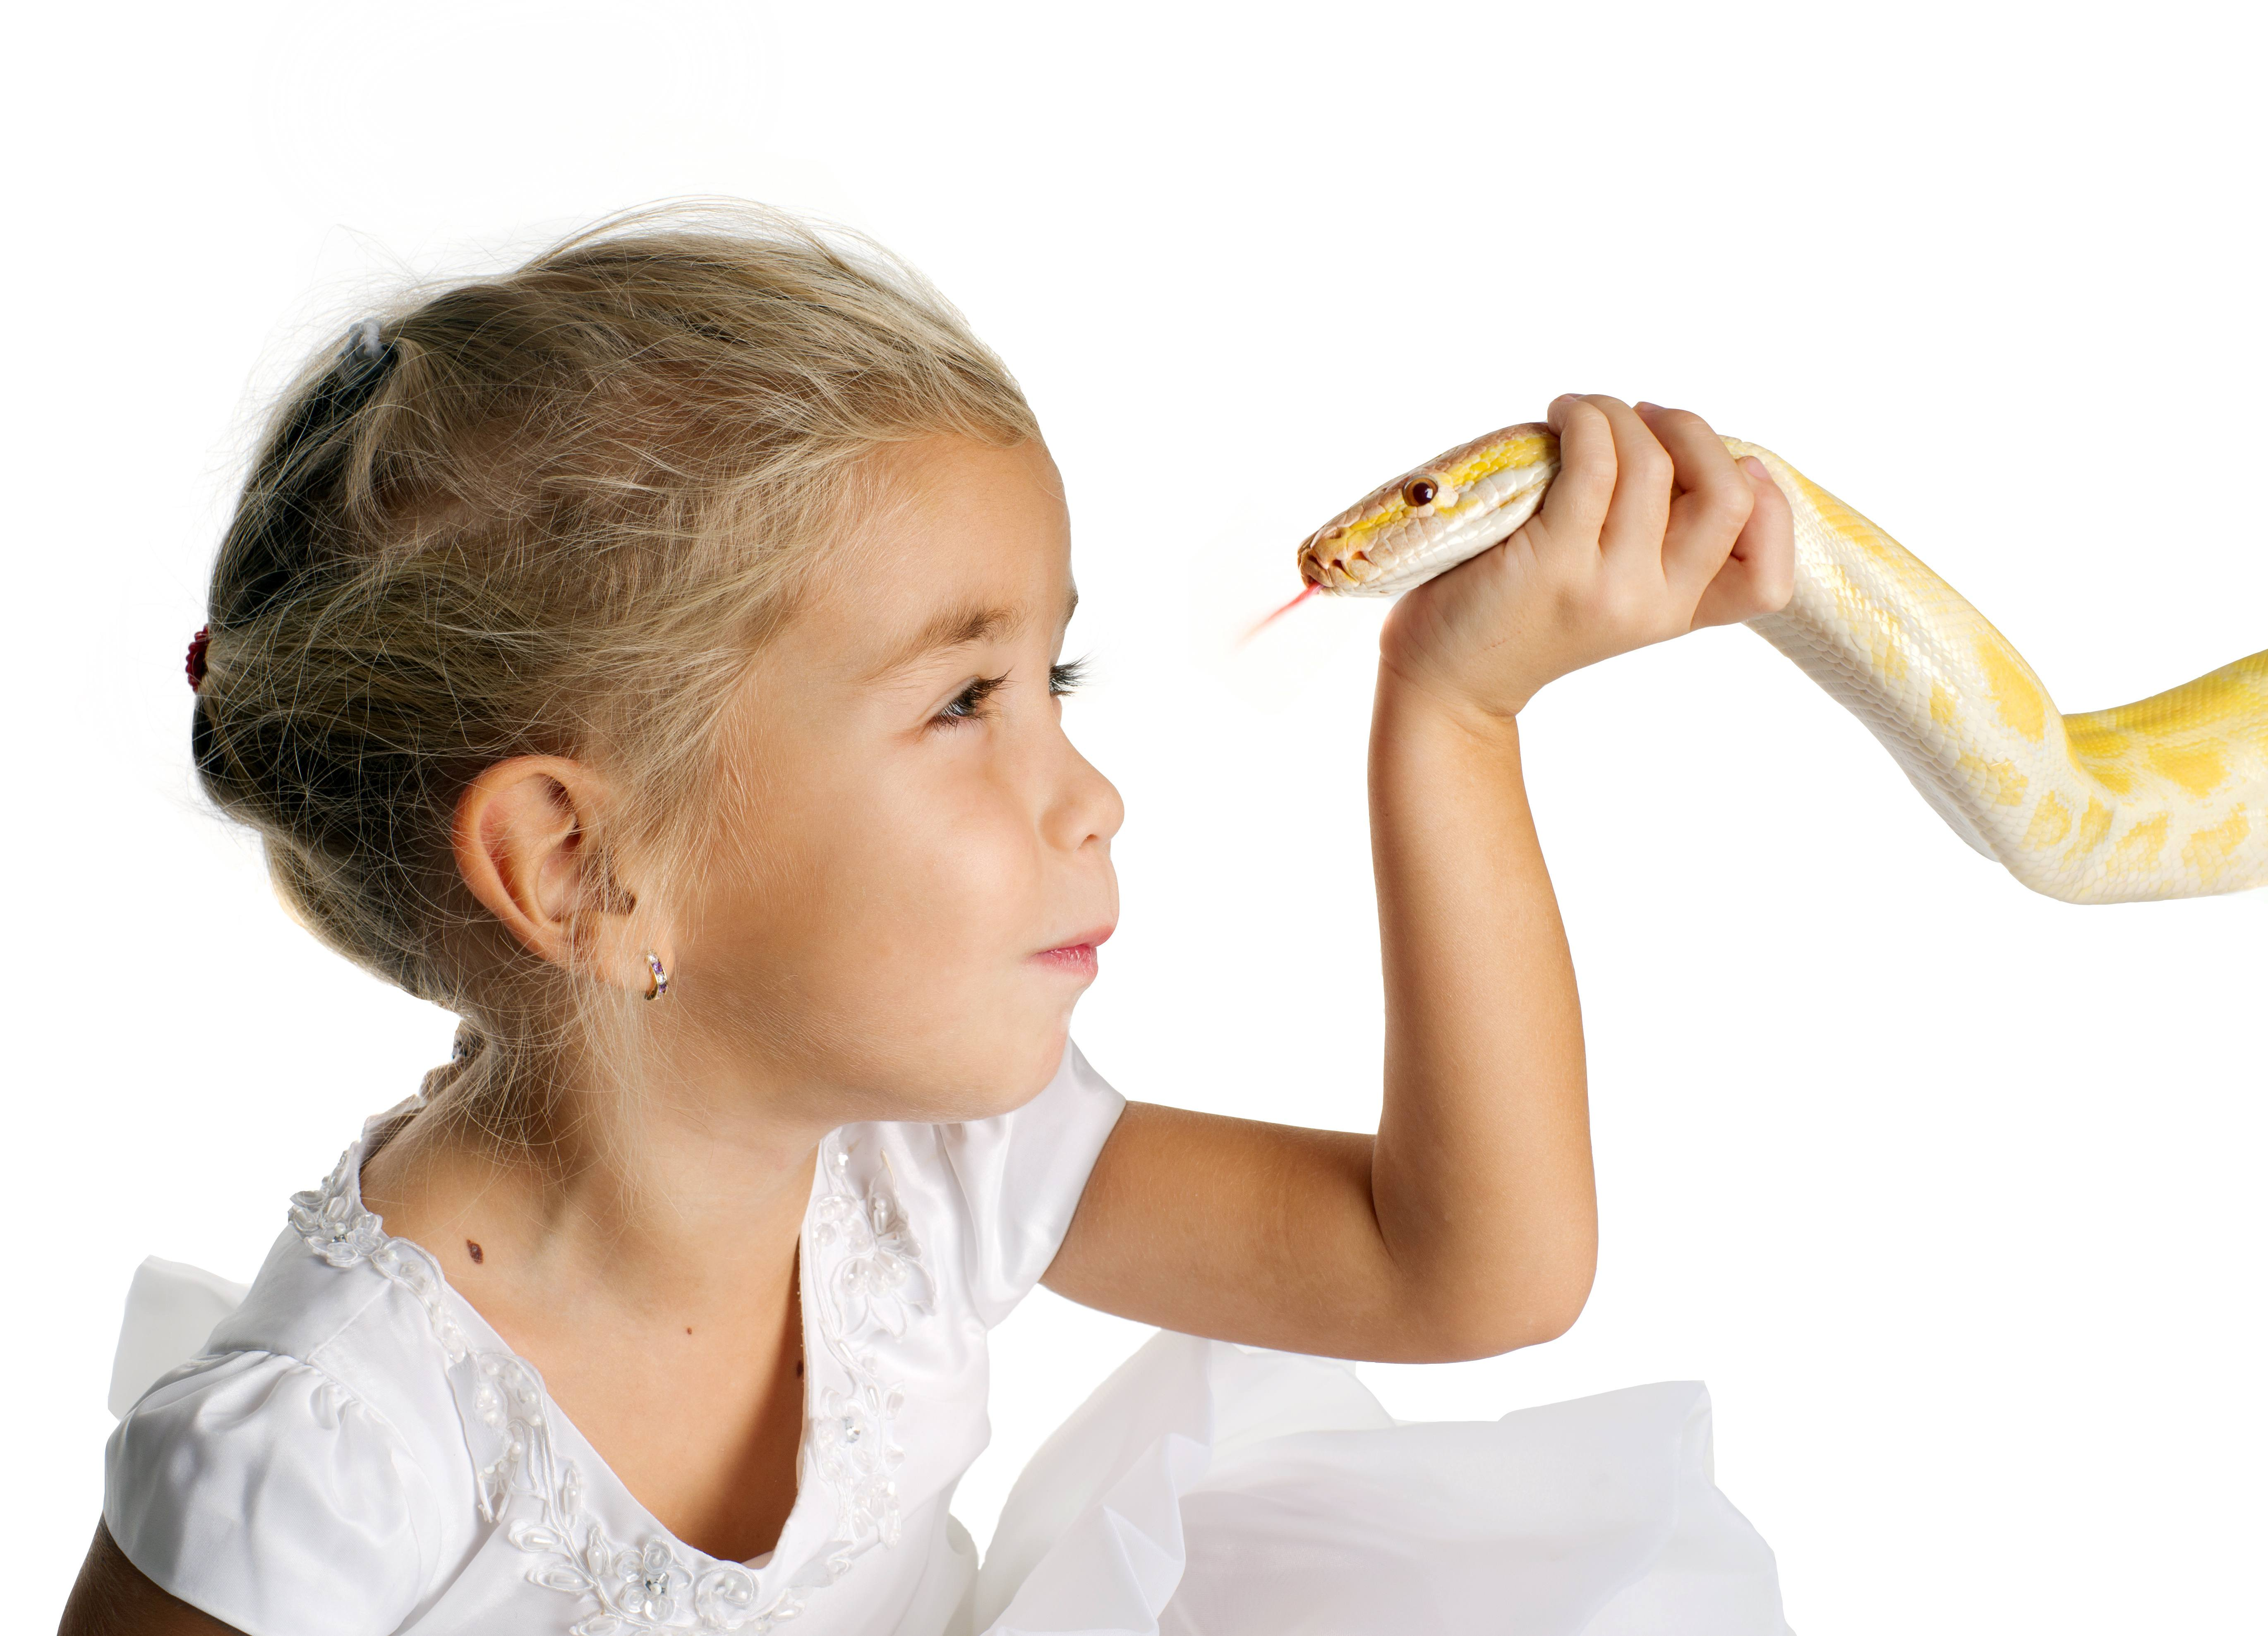 Little girl playing with pet snake